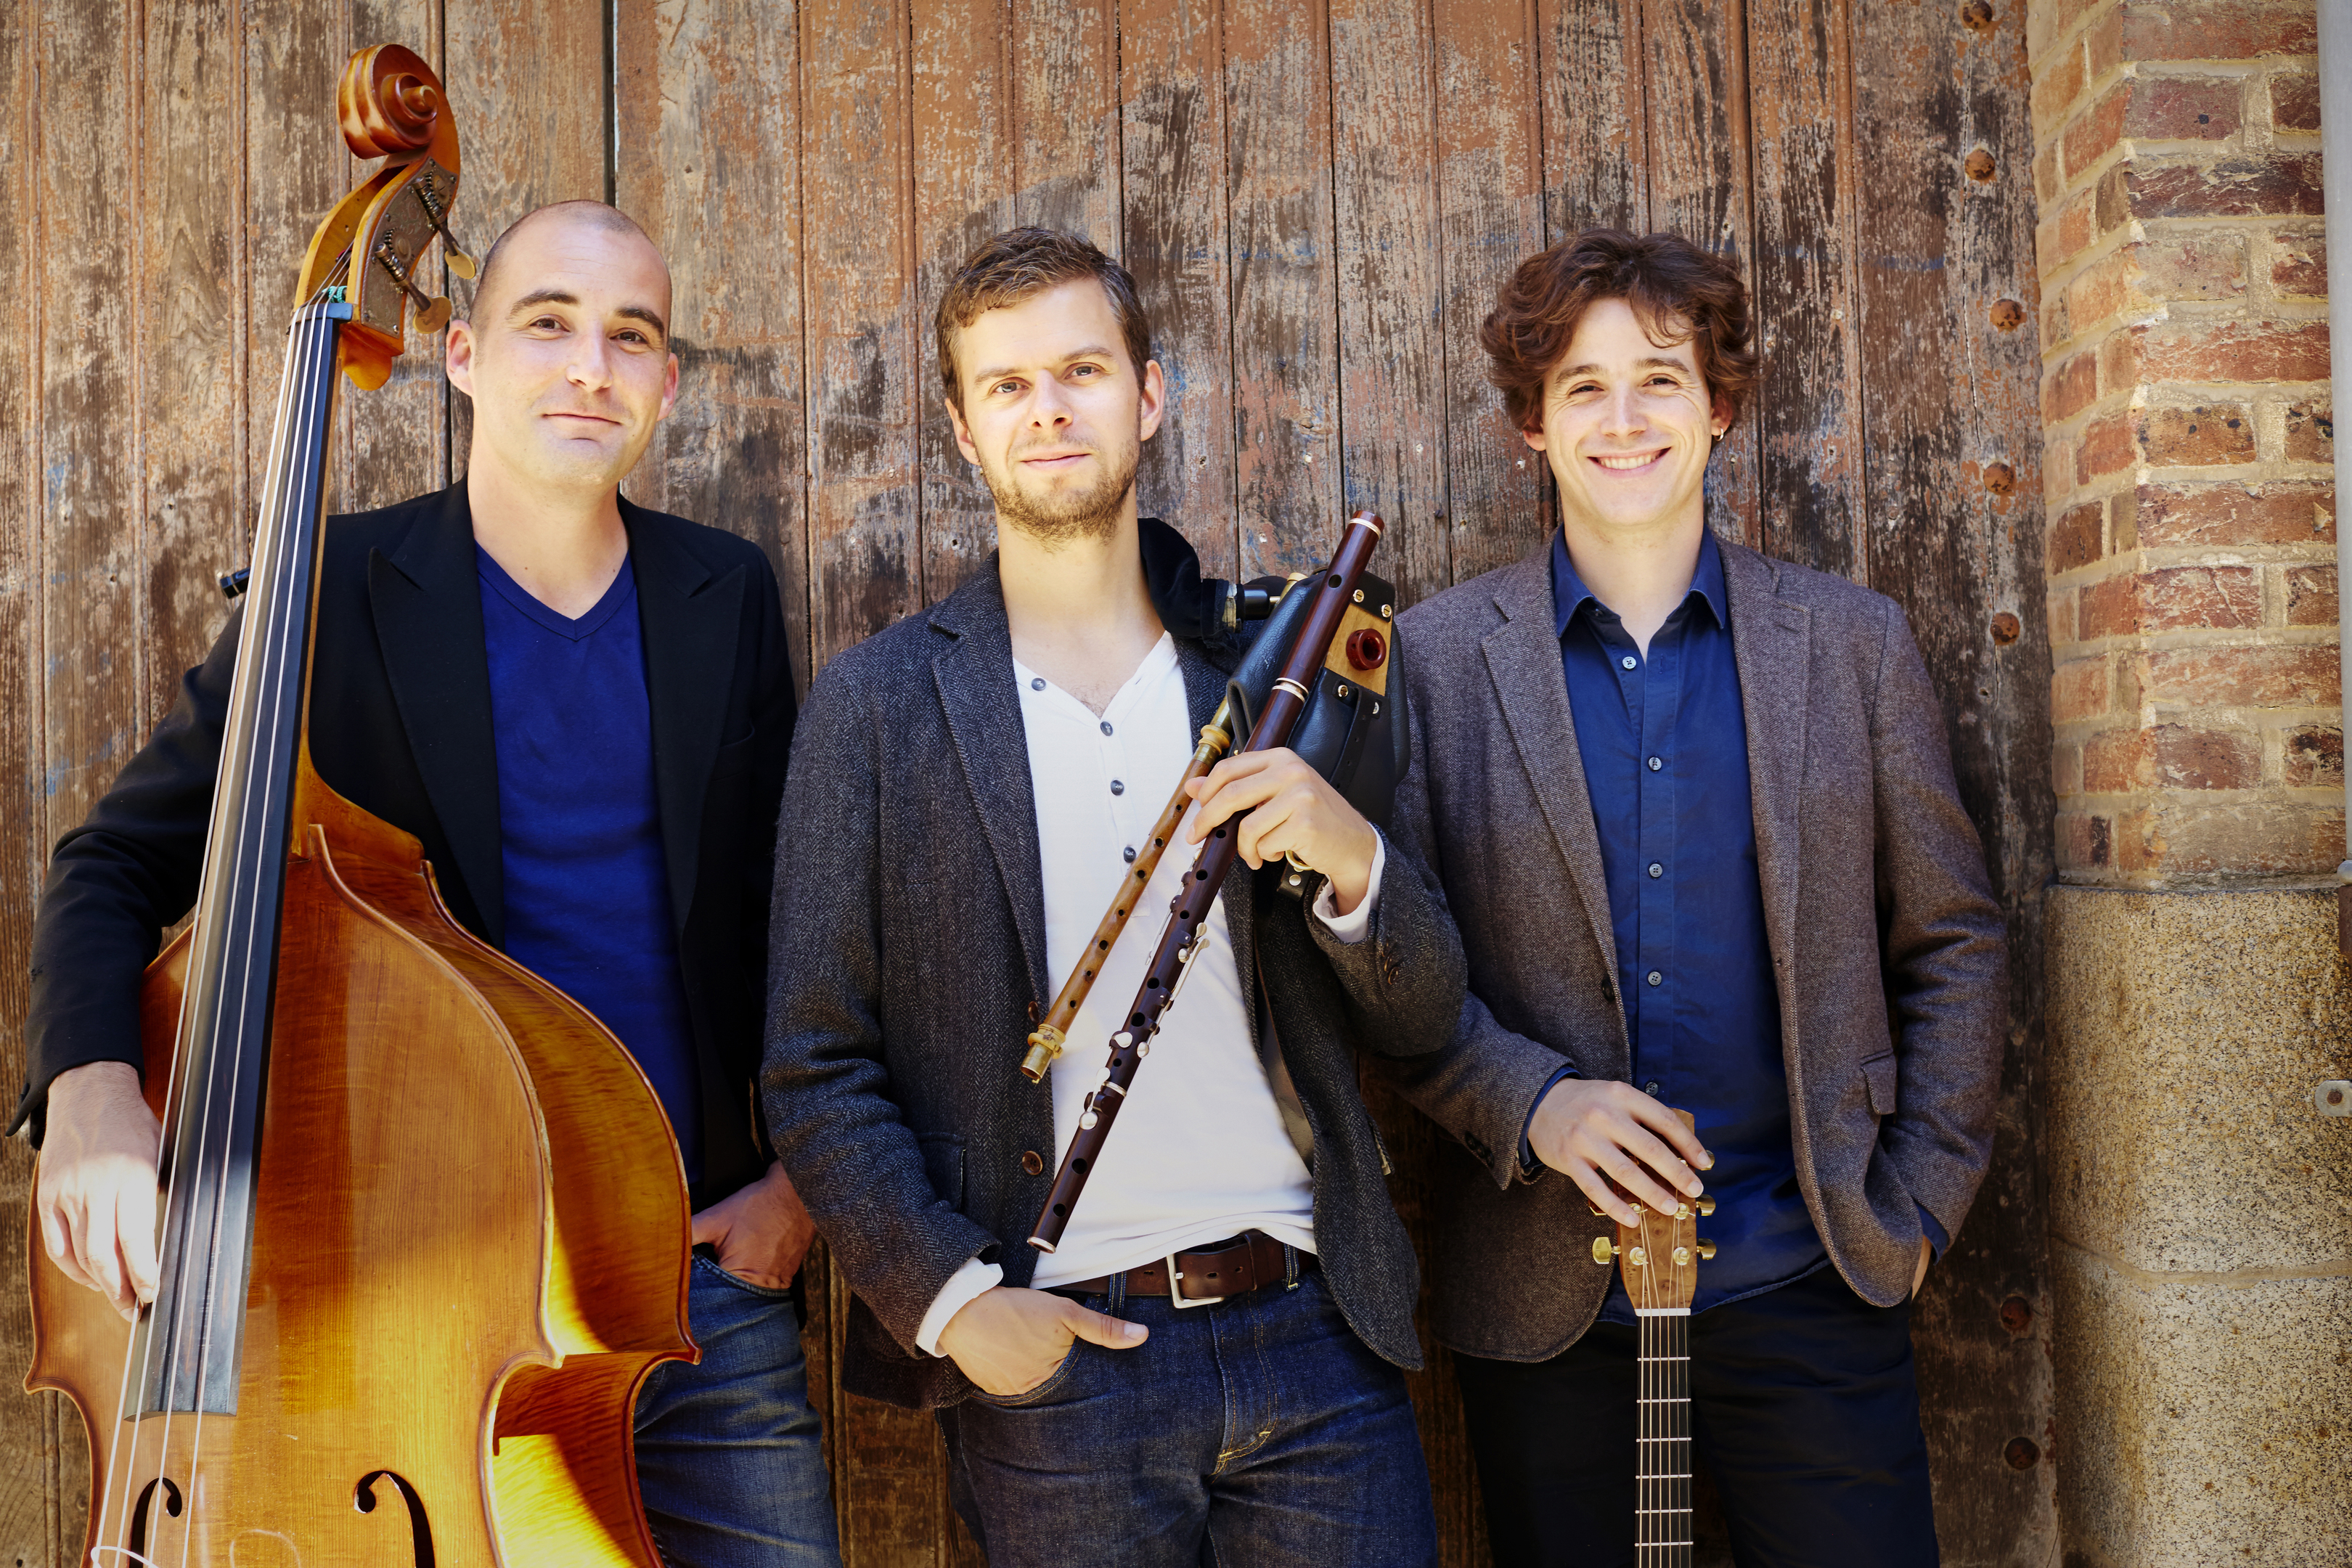 The Calum Stewart Trio are one of a number of acts playing